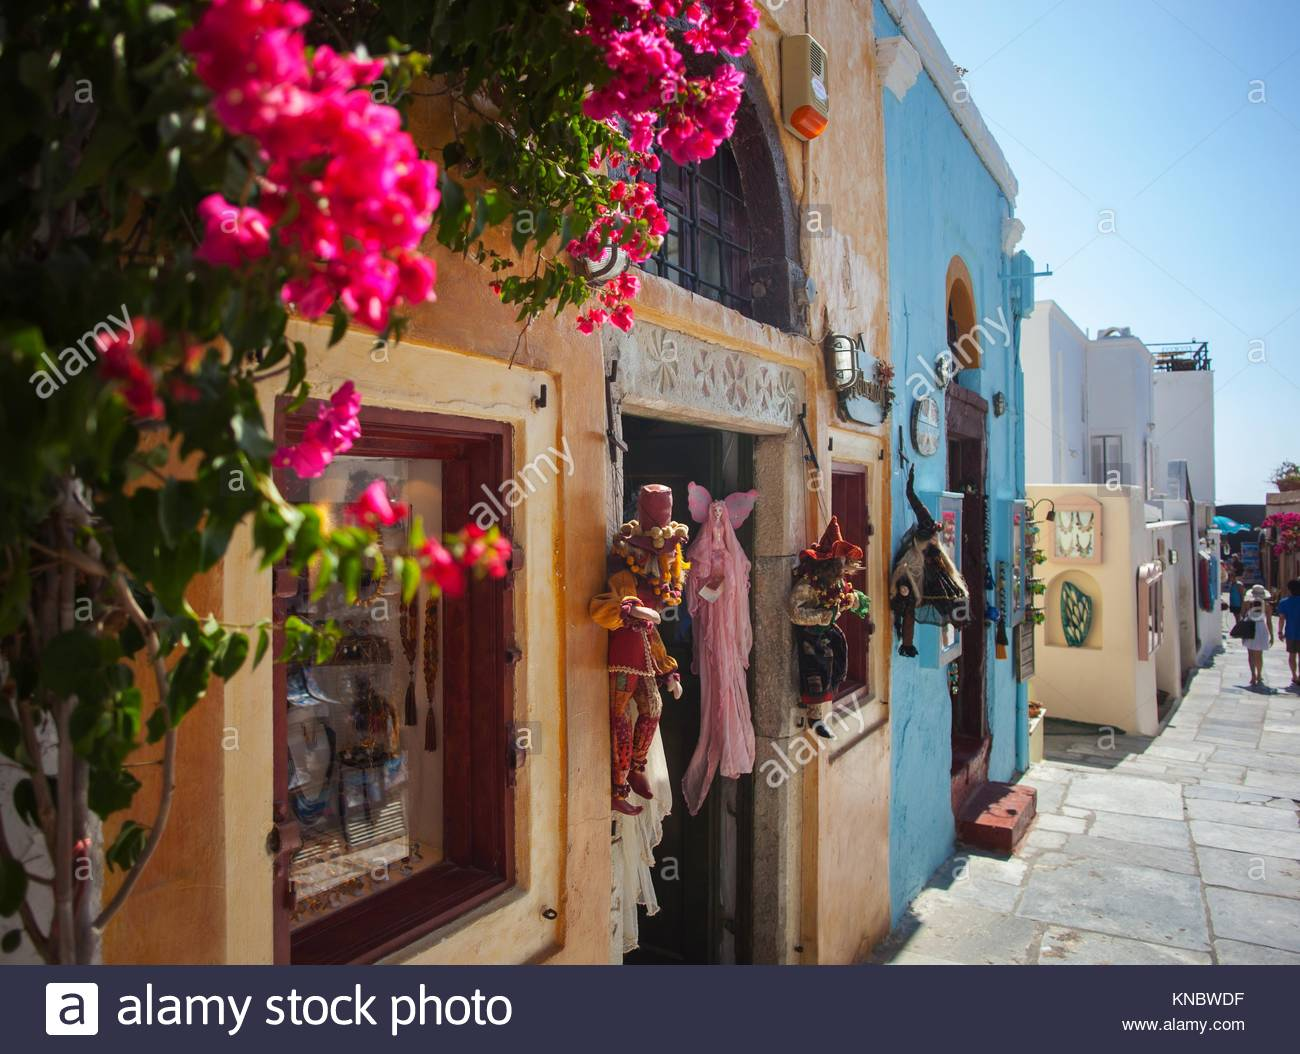 Santorini Island, Greece: Streets with stores. Santorini, classically Thera, and officially Thira, is an island - Stock Image